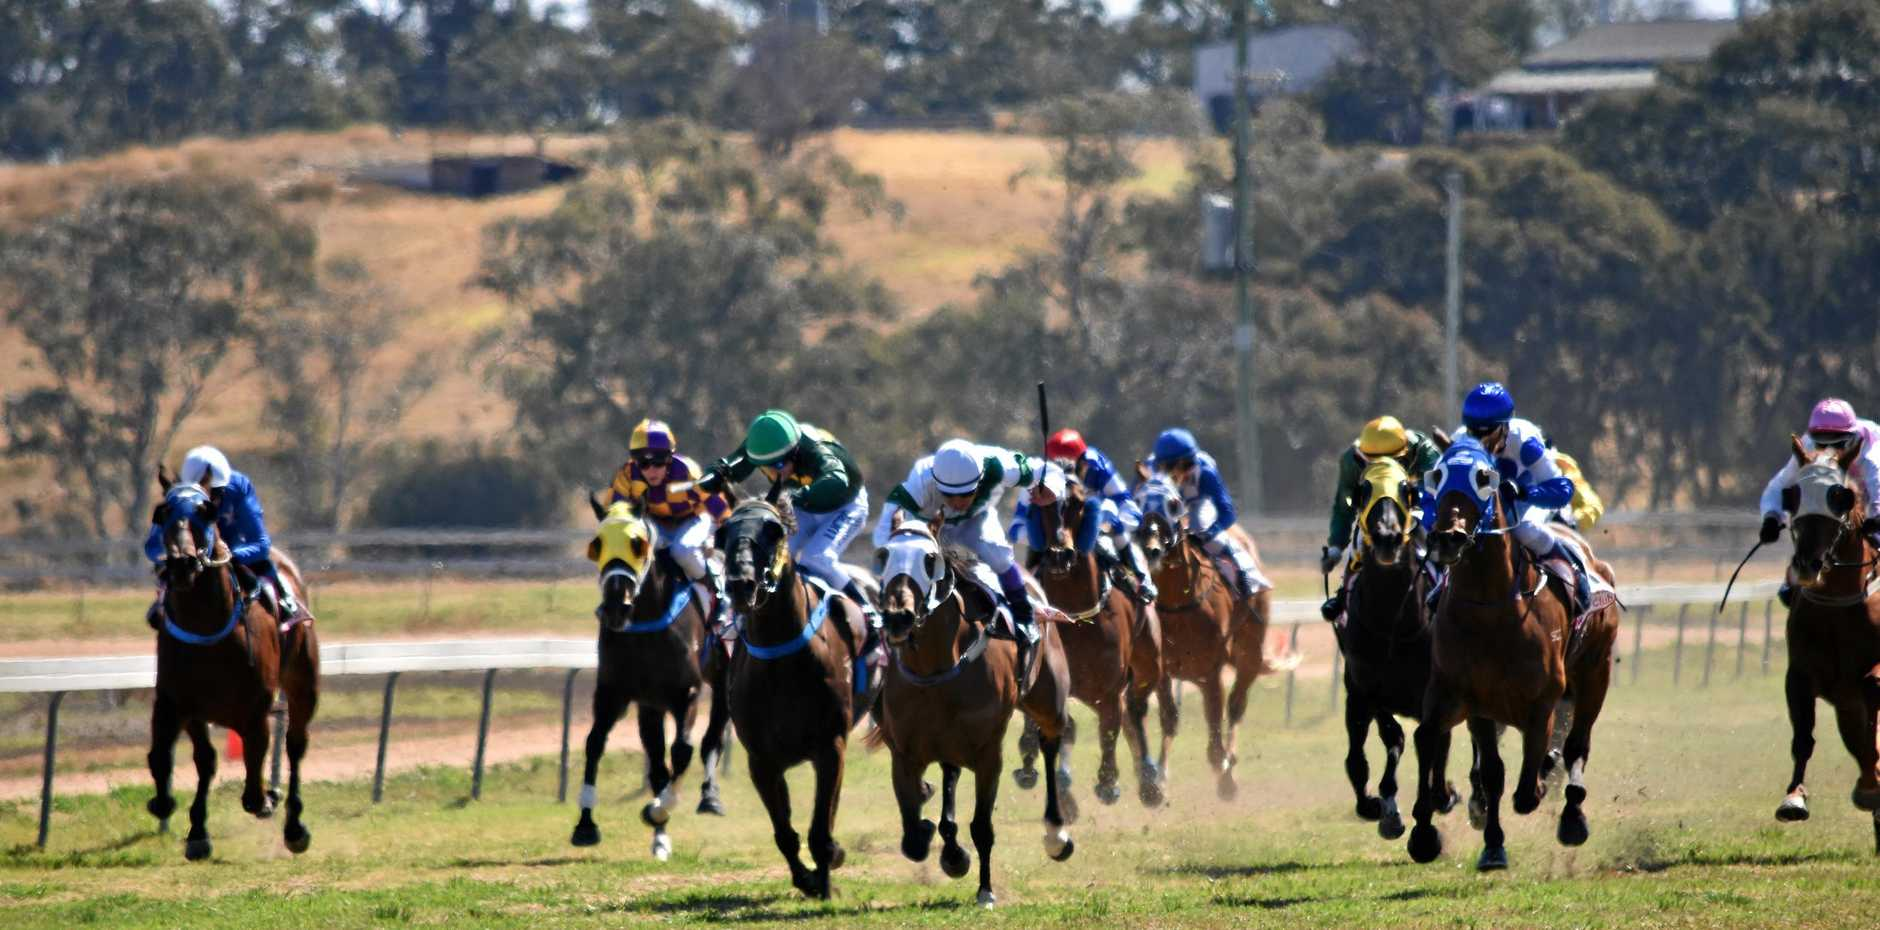 Racing Queensland is set to increase the base riding fee by $40 per ride between 2018 and 2021.